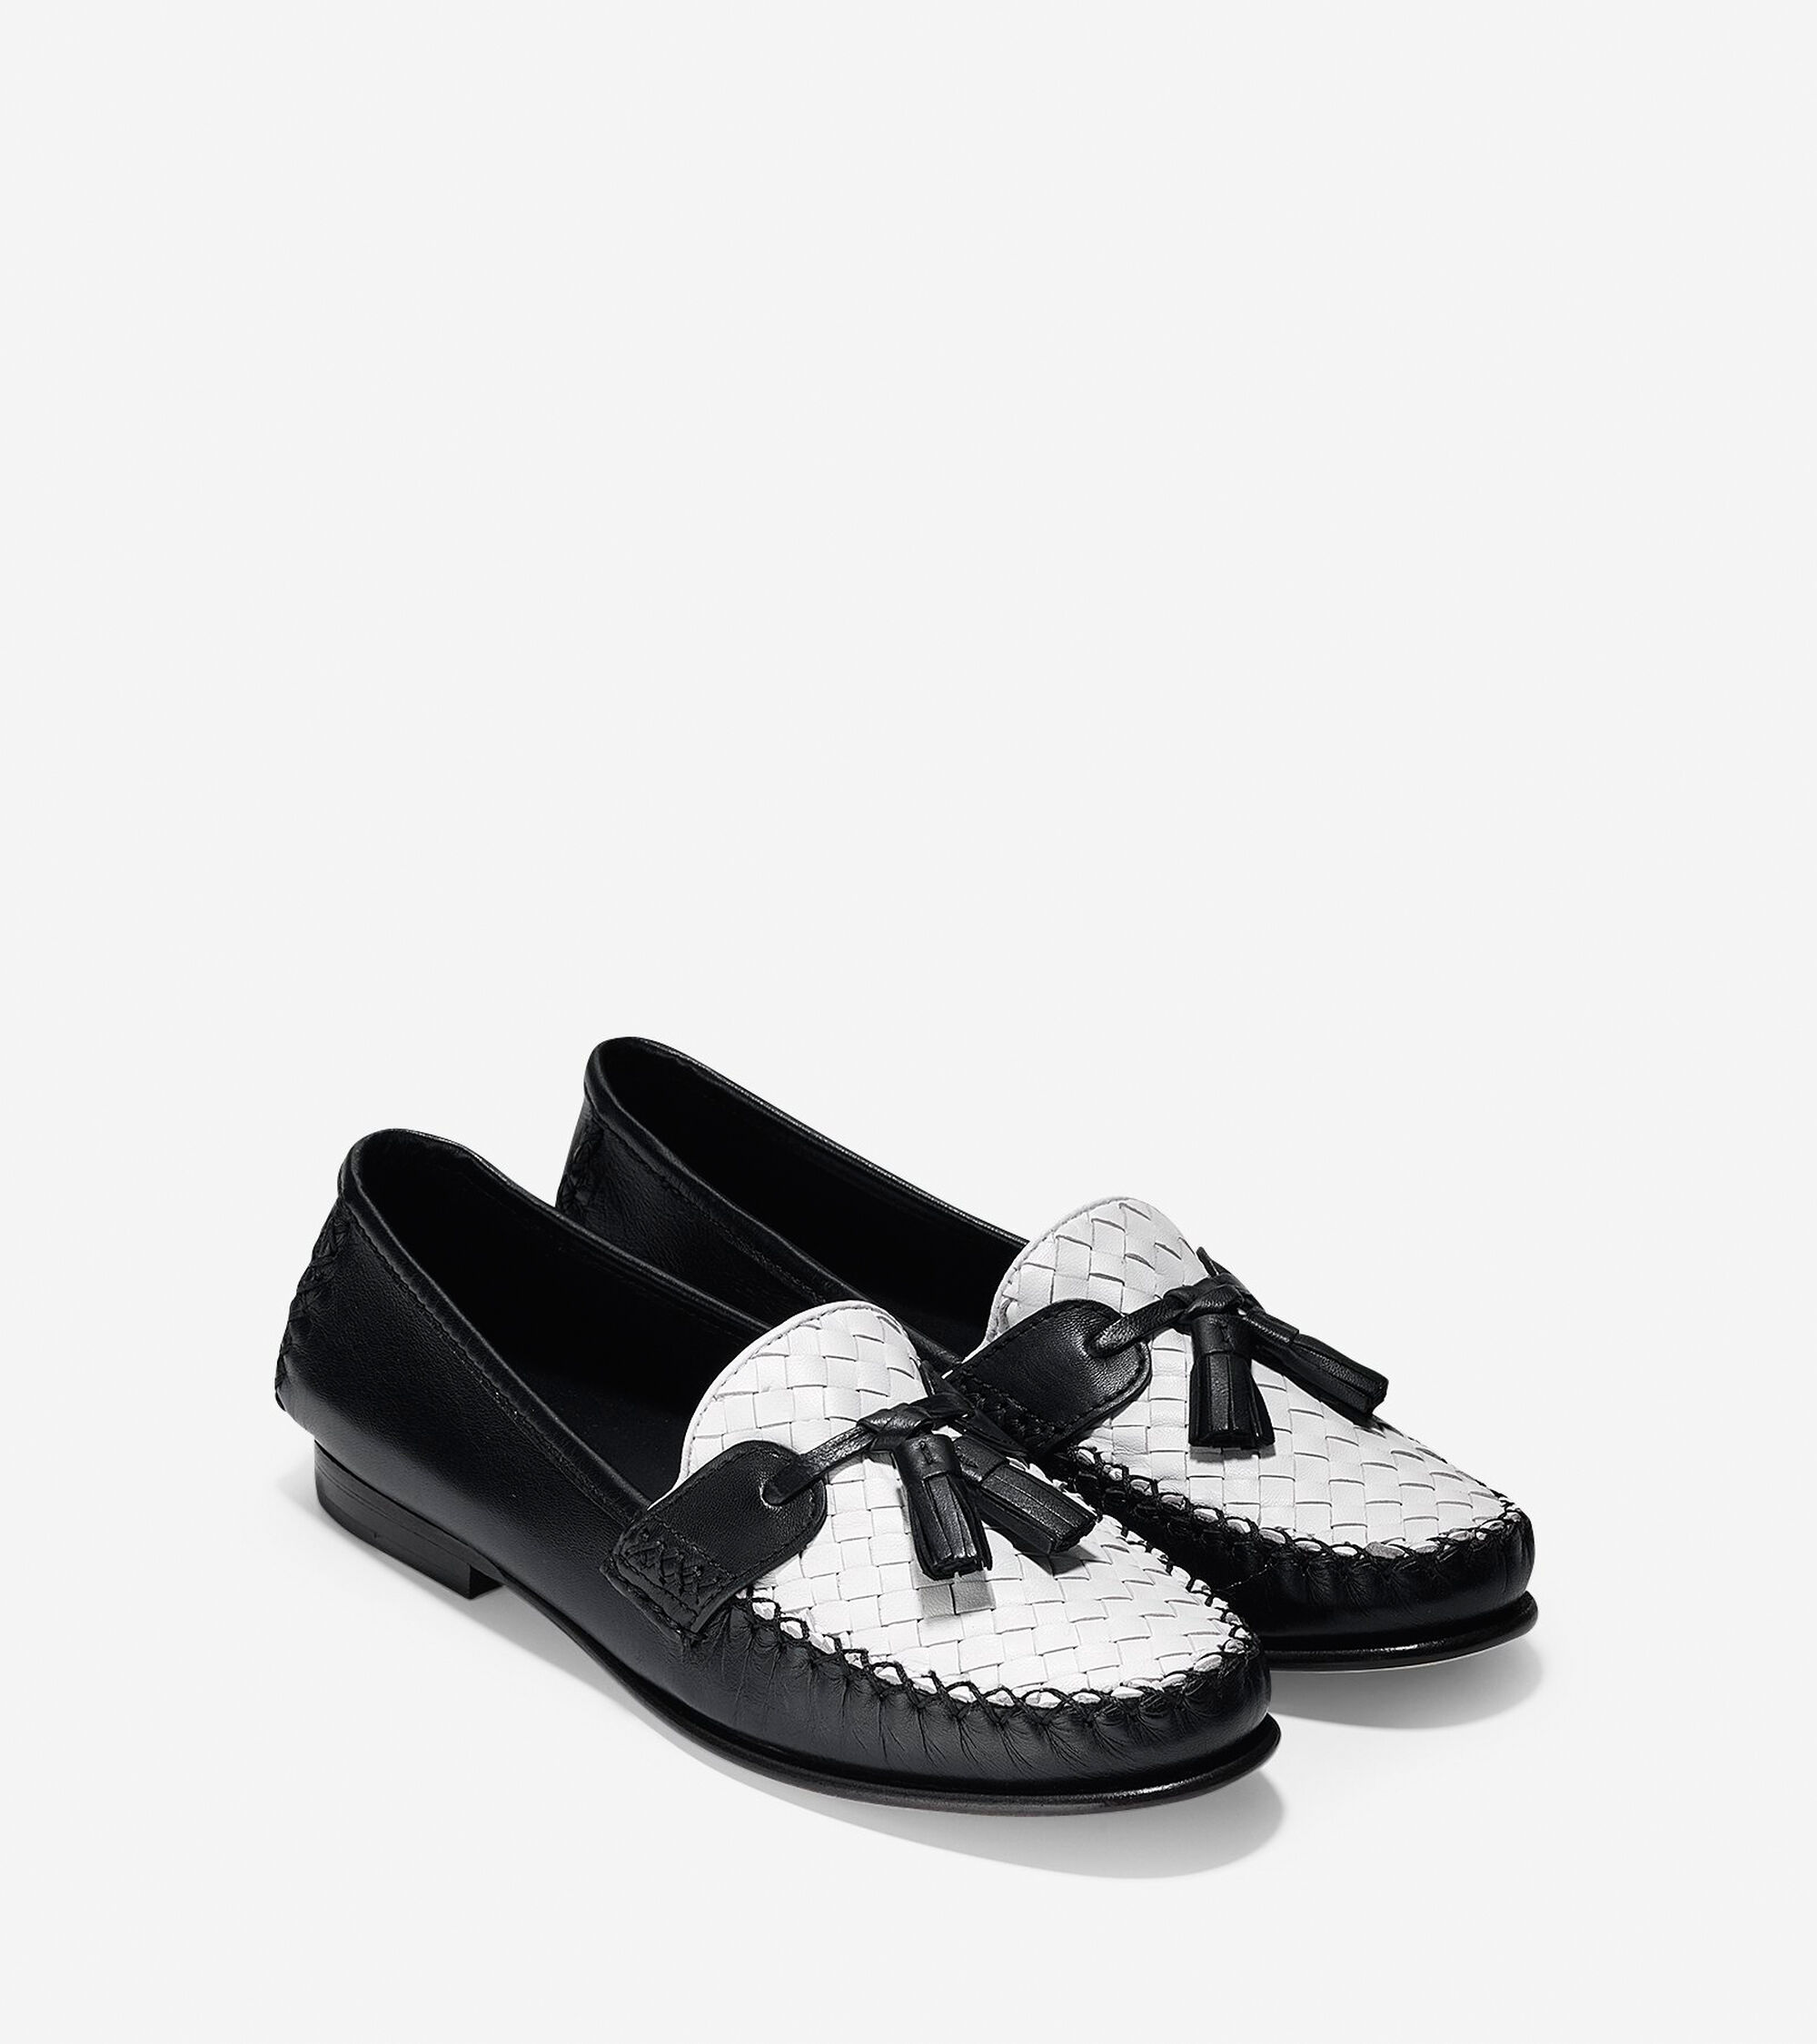 dfa8ae644fb Women s Jagger Soft Weave Loafers in Black-White